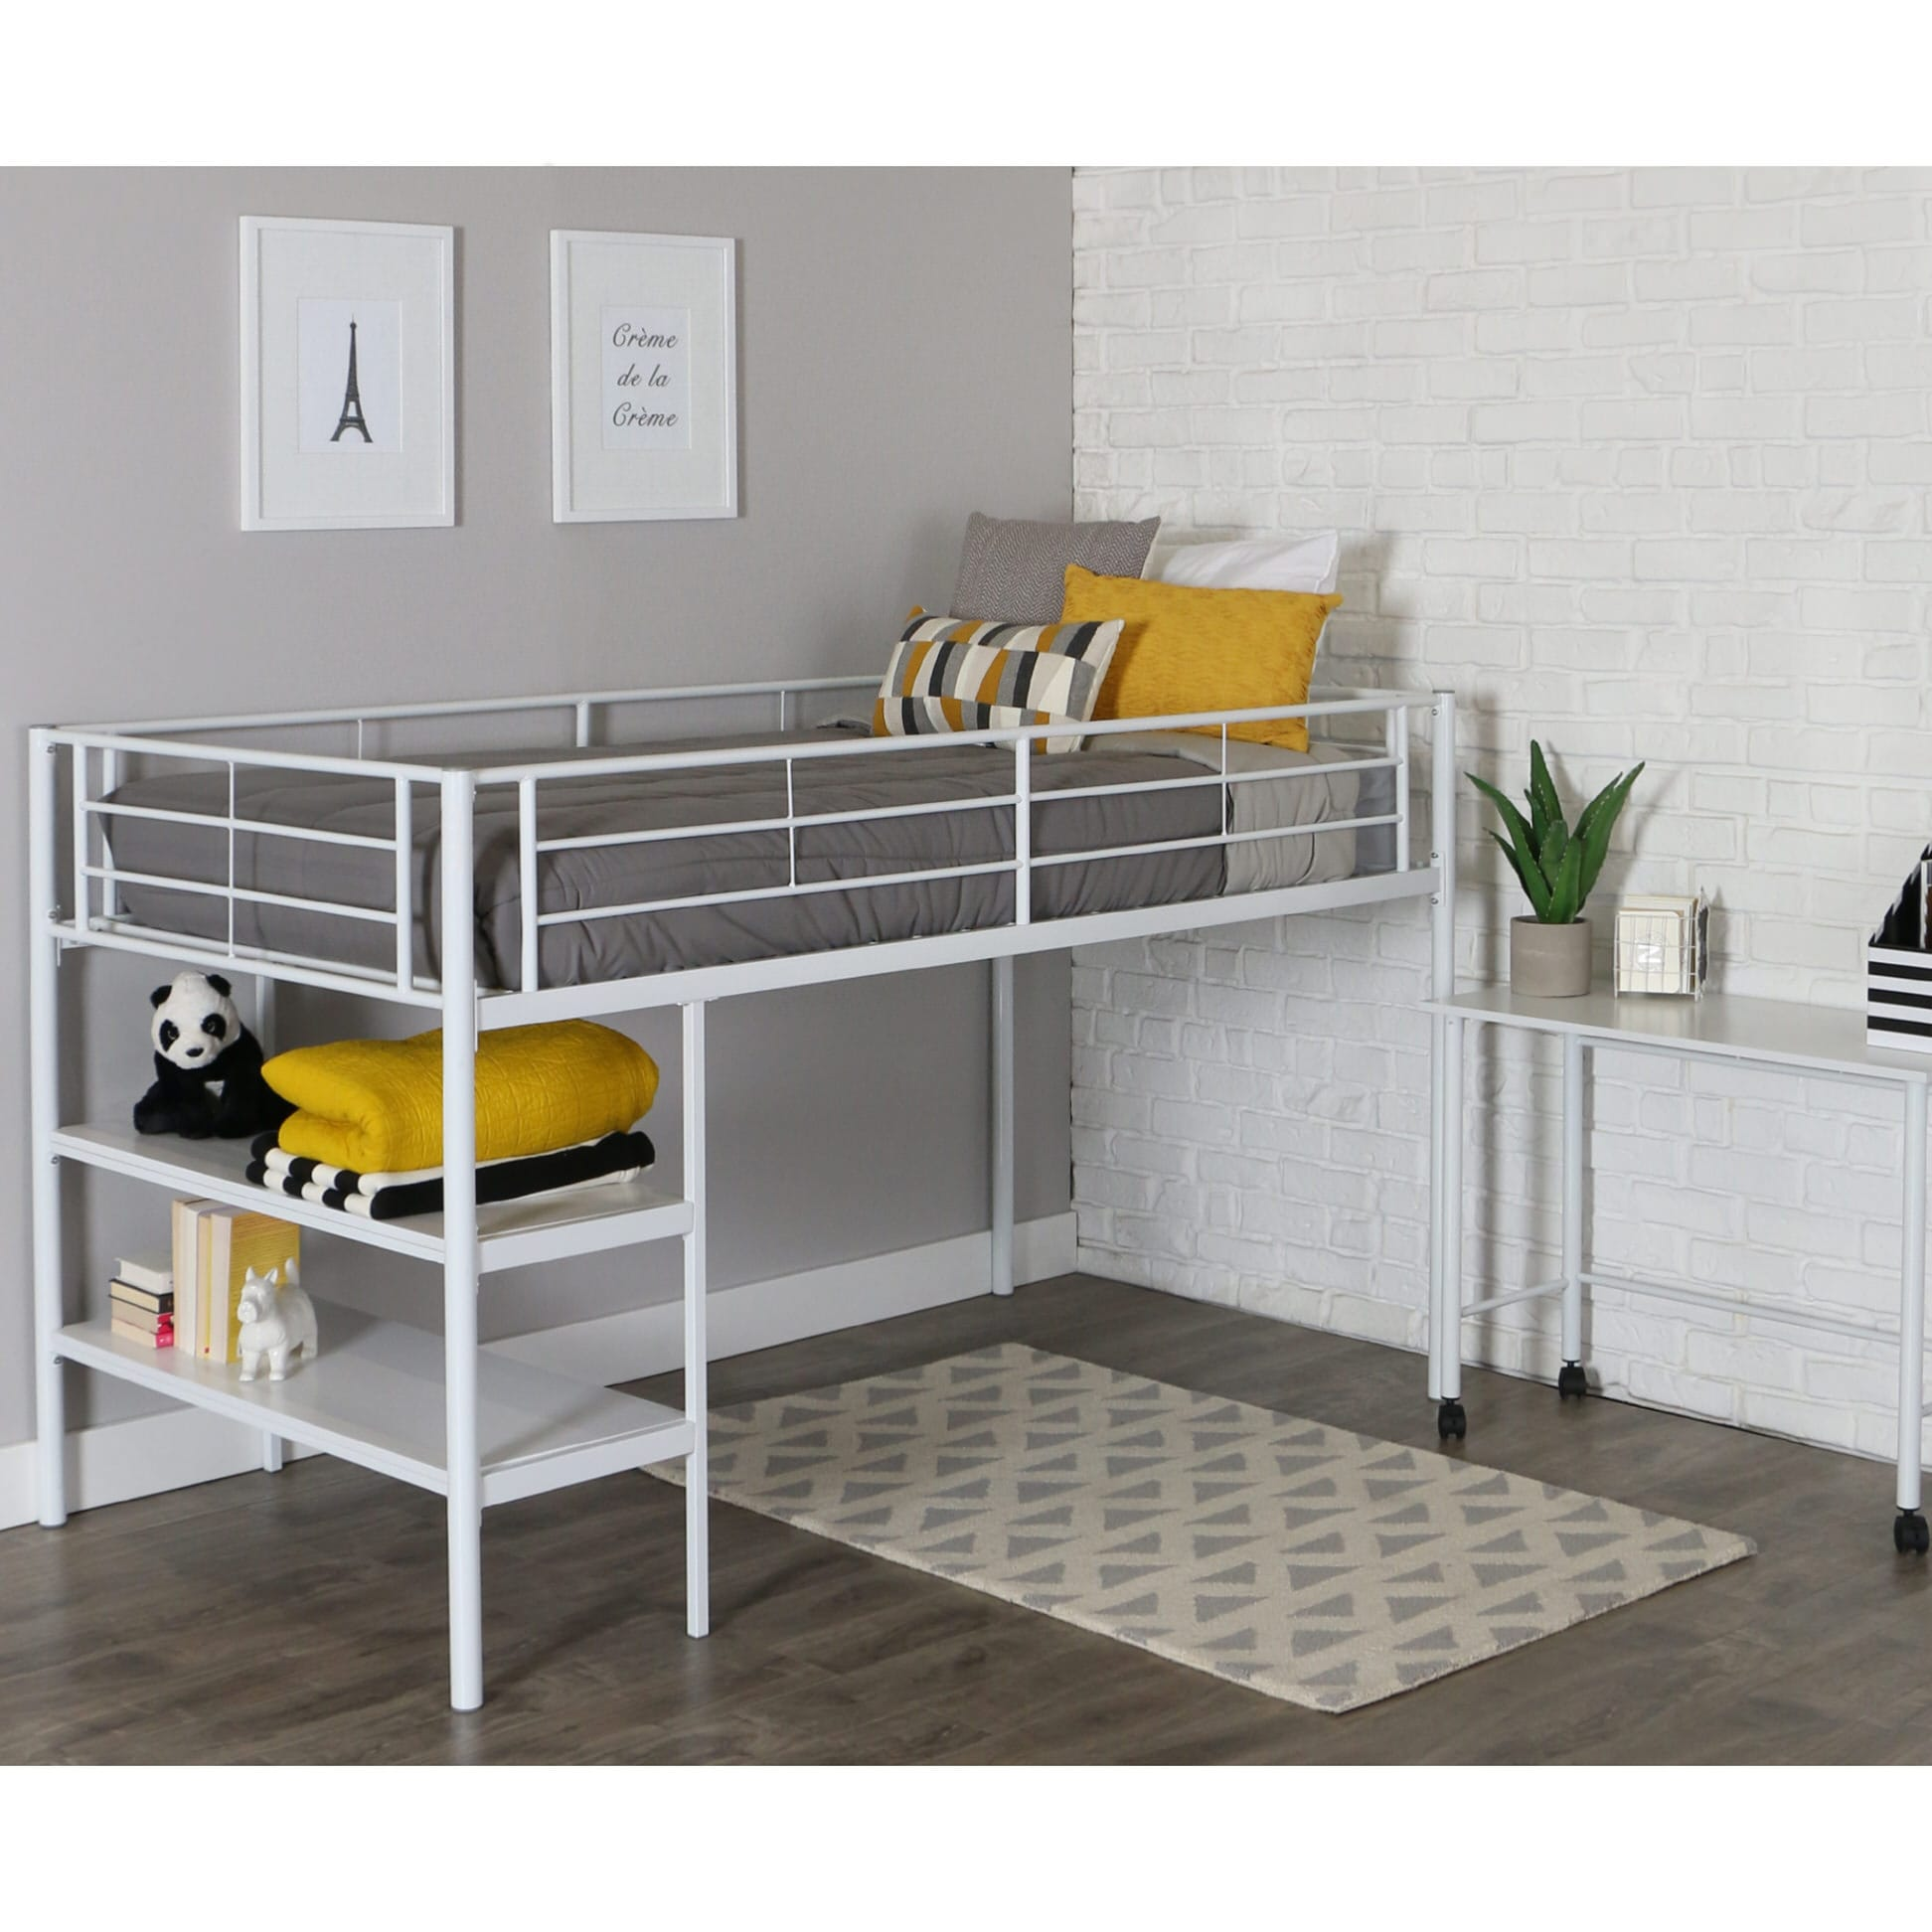 Sunset Twin Loft Bed with Desk and Shelves - White by Walker Edison